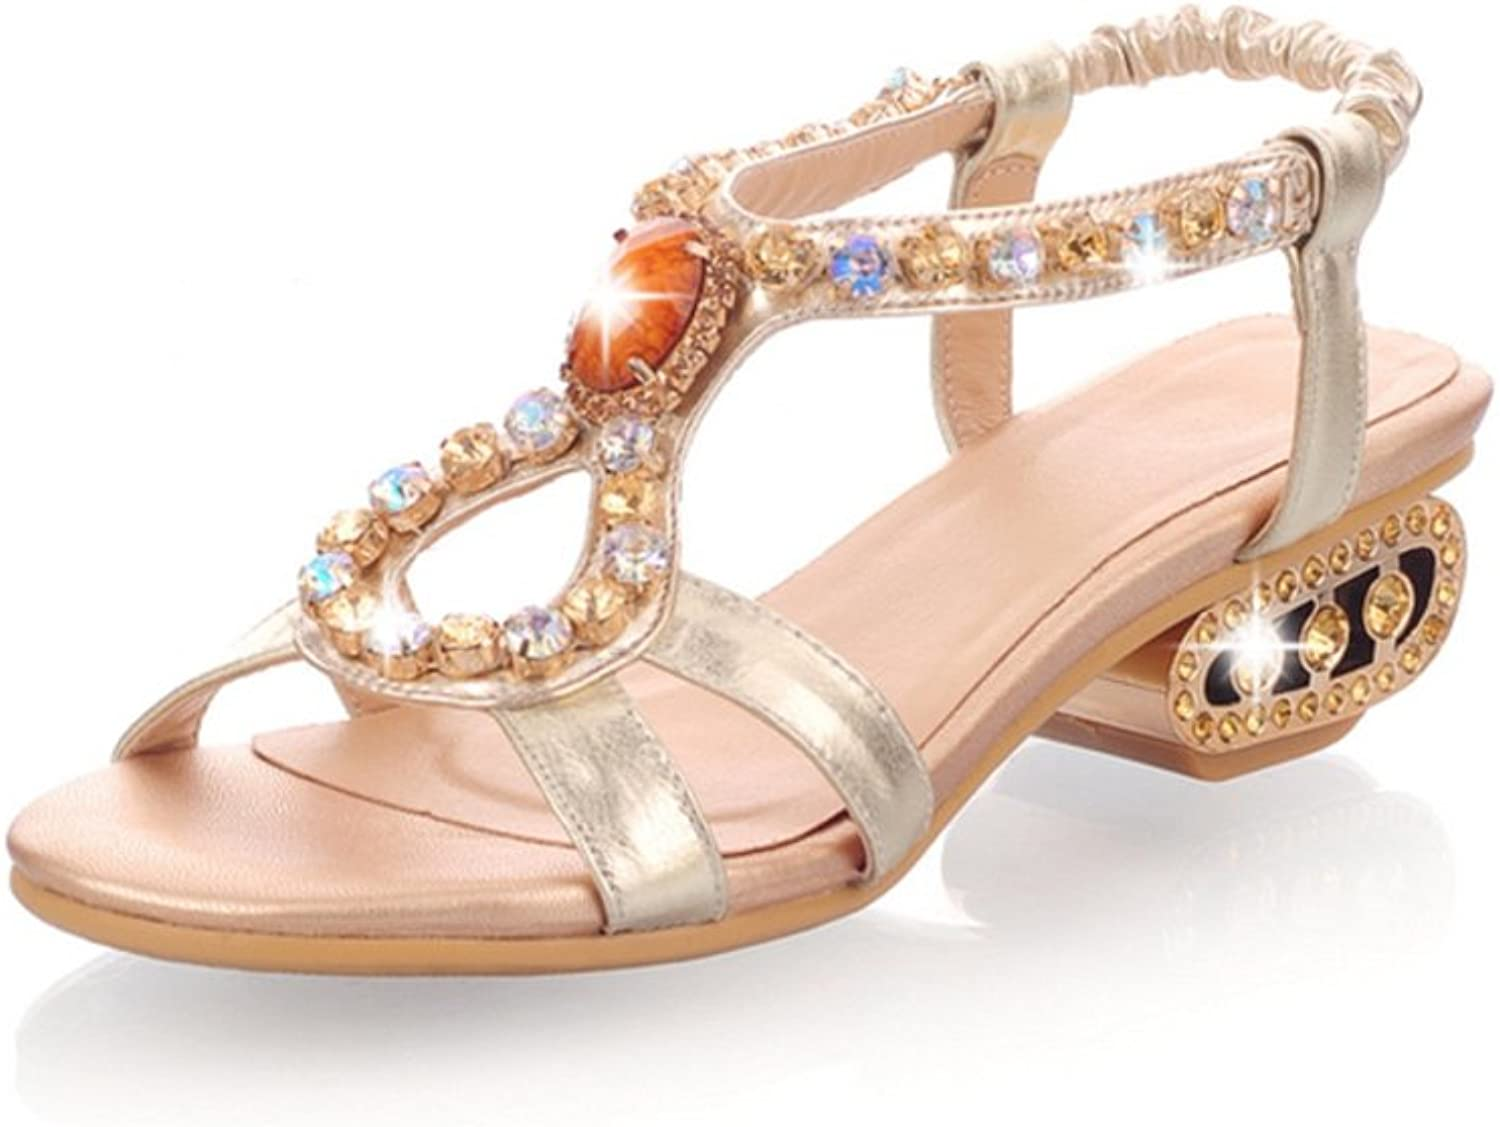 RHFDVGDS Summer fashion Sandals Leather shoes Rhinestone flat sandals with flat